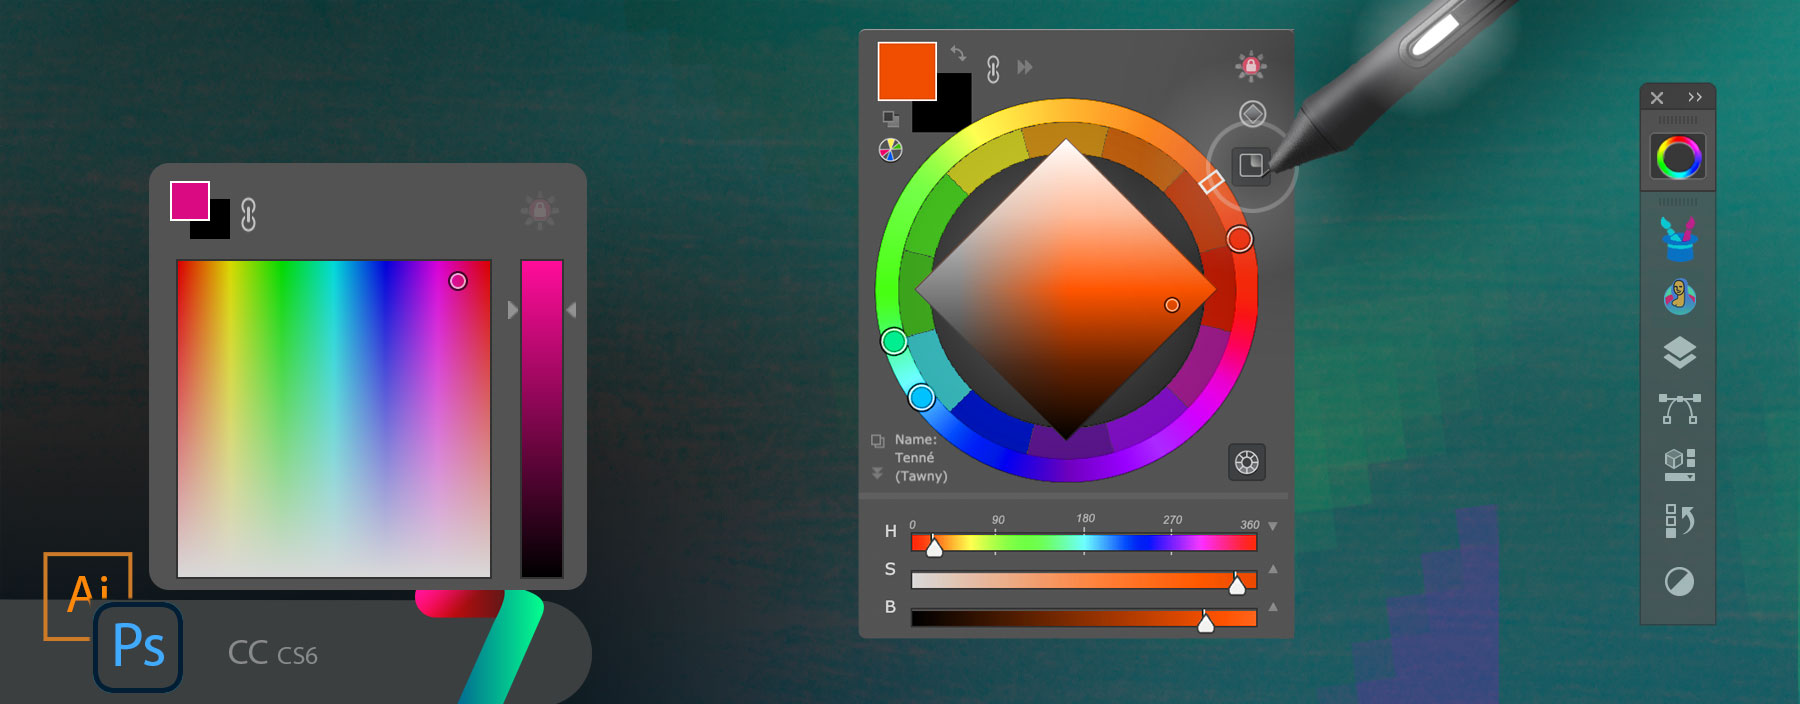 MagicPicker 7: Advanced color picking HUD in Adobe Photoshop